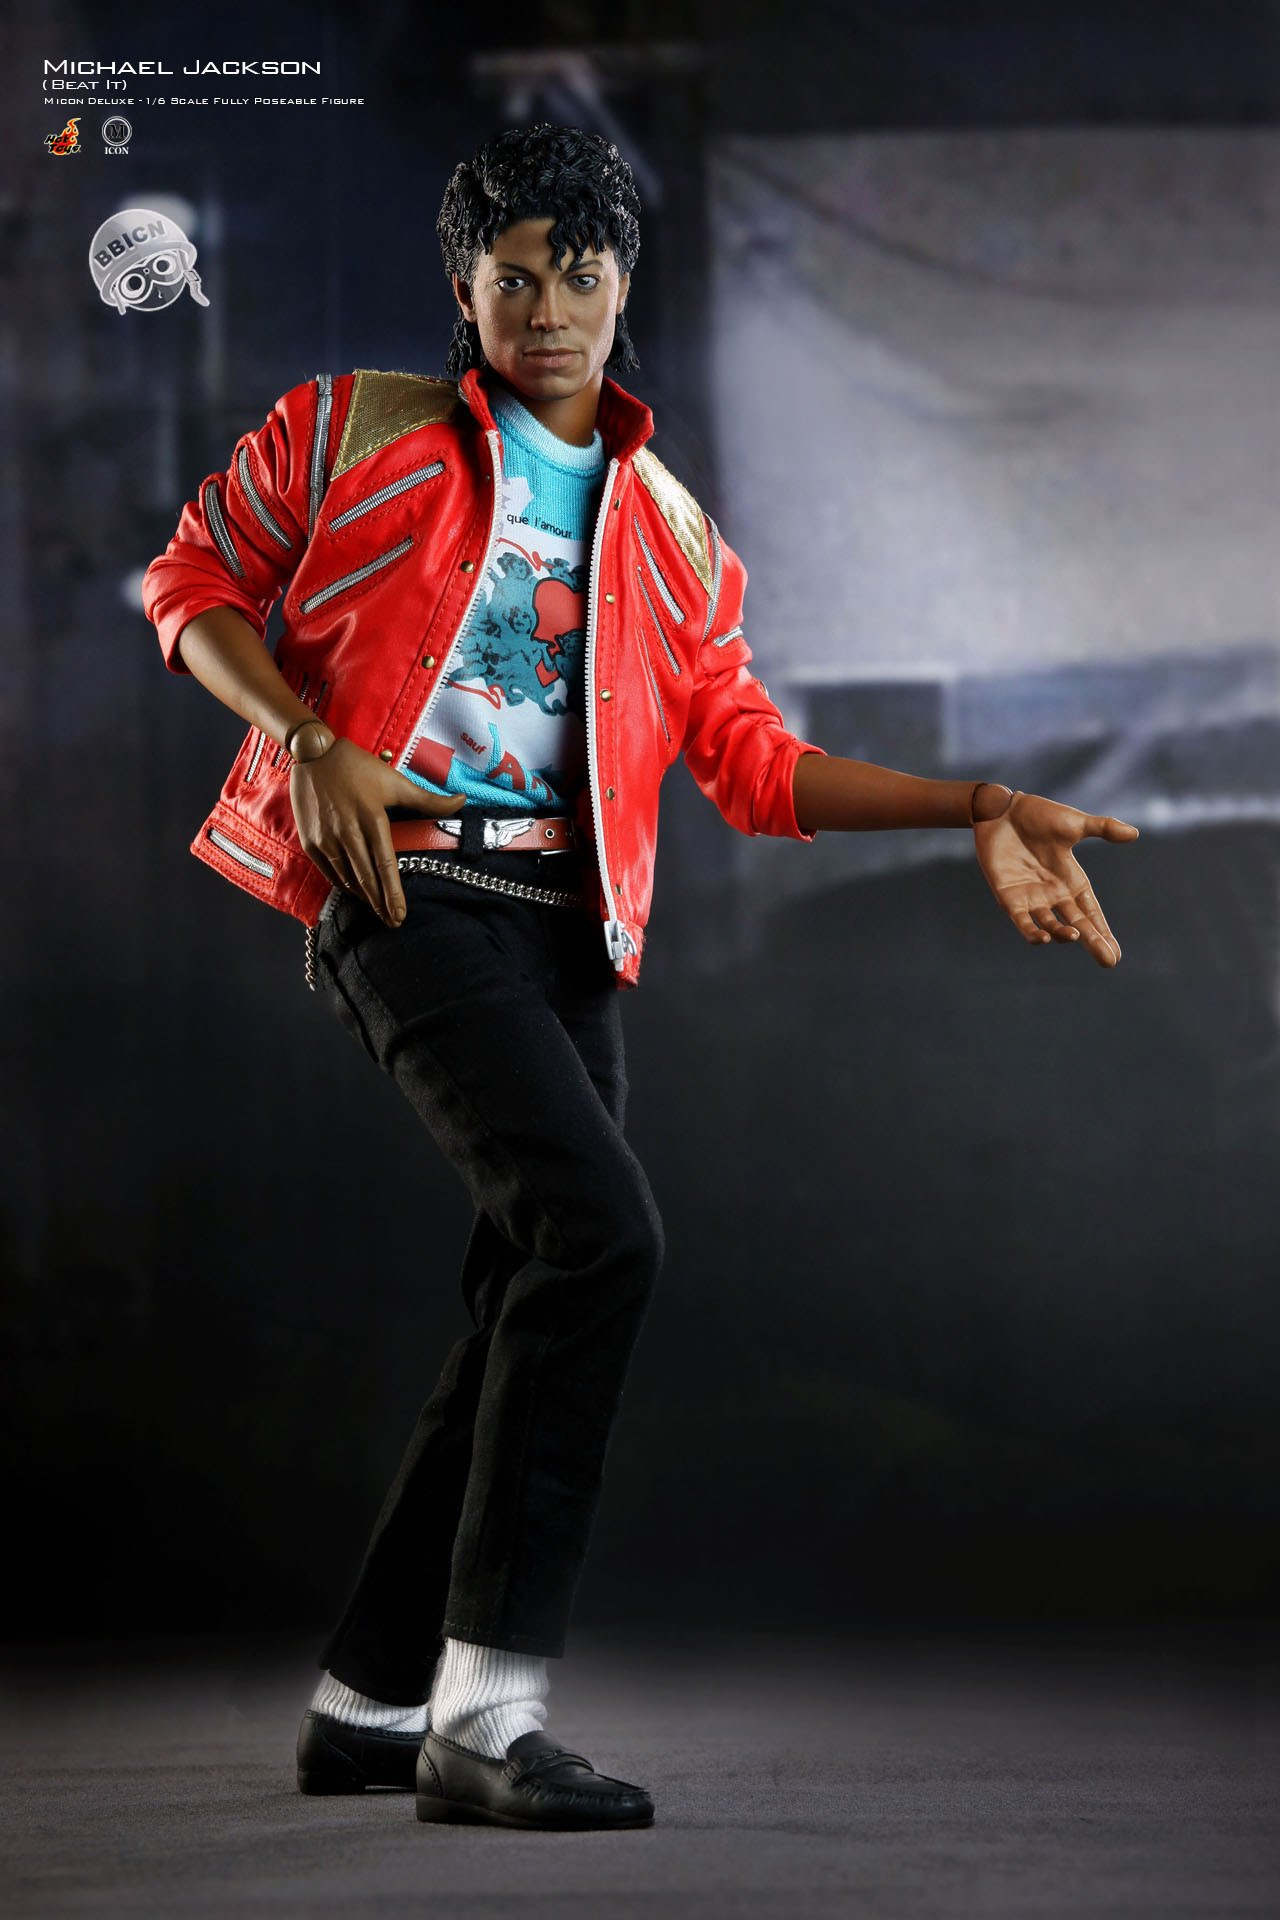 [NUOVE FOTO] Nuova Action Figure di Beat It - Pagina 2 0940454ac33n393amf44fc